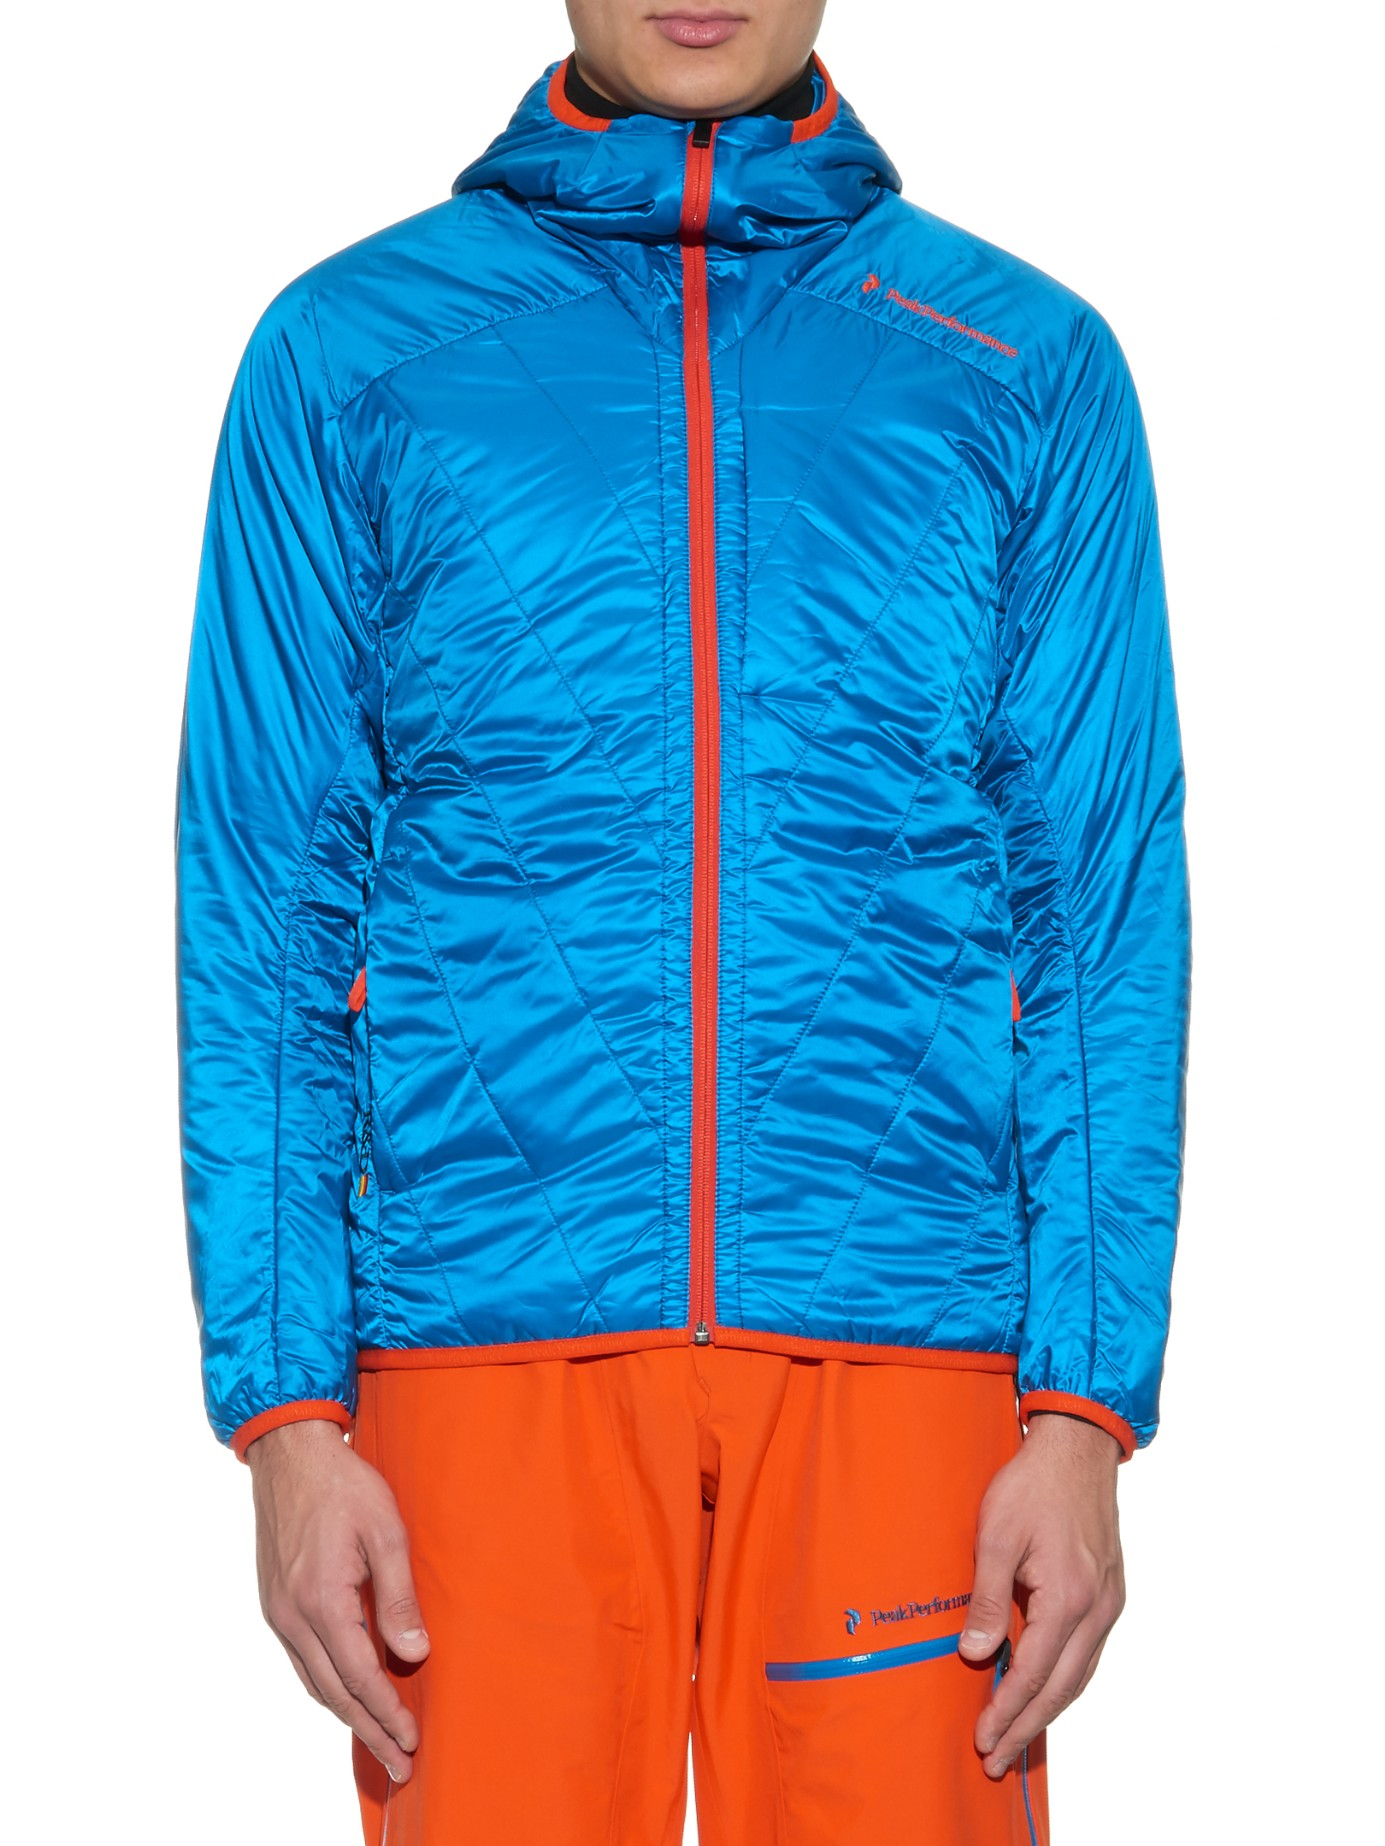 6f5271f6d3abc4 Lyst - Peak Performance Heli Liner Technical Ski Jackets in Blue for Men